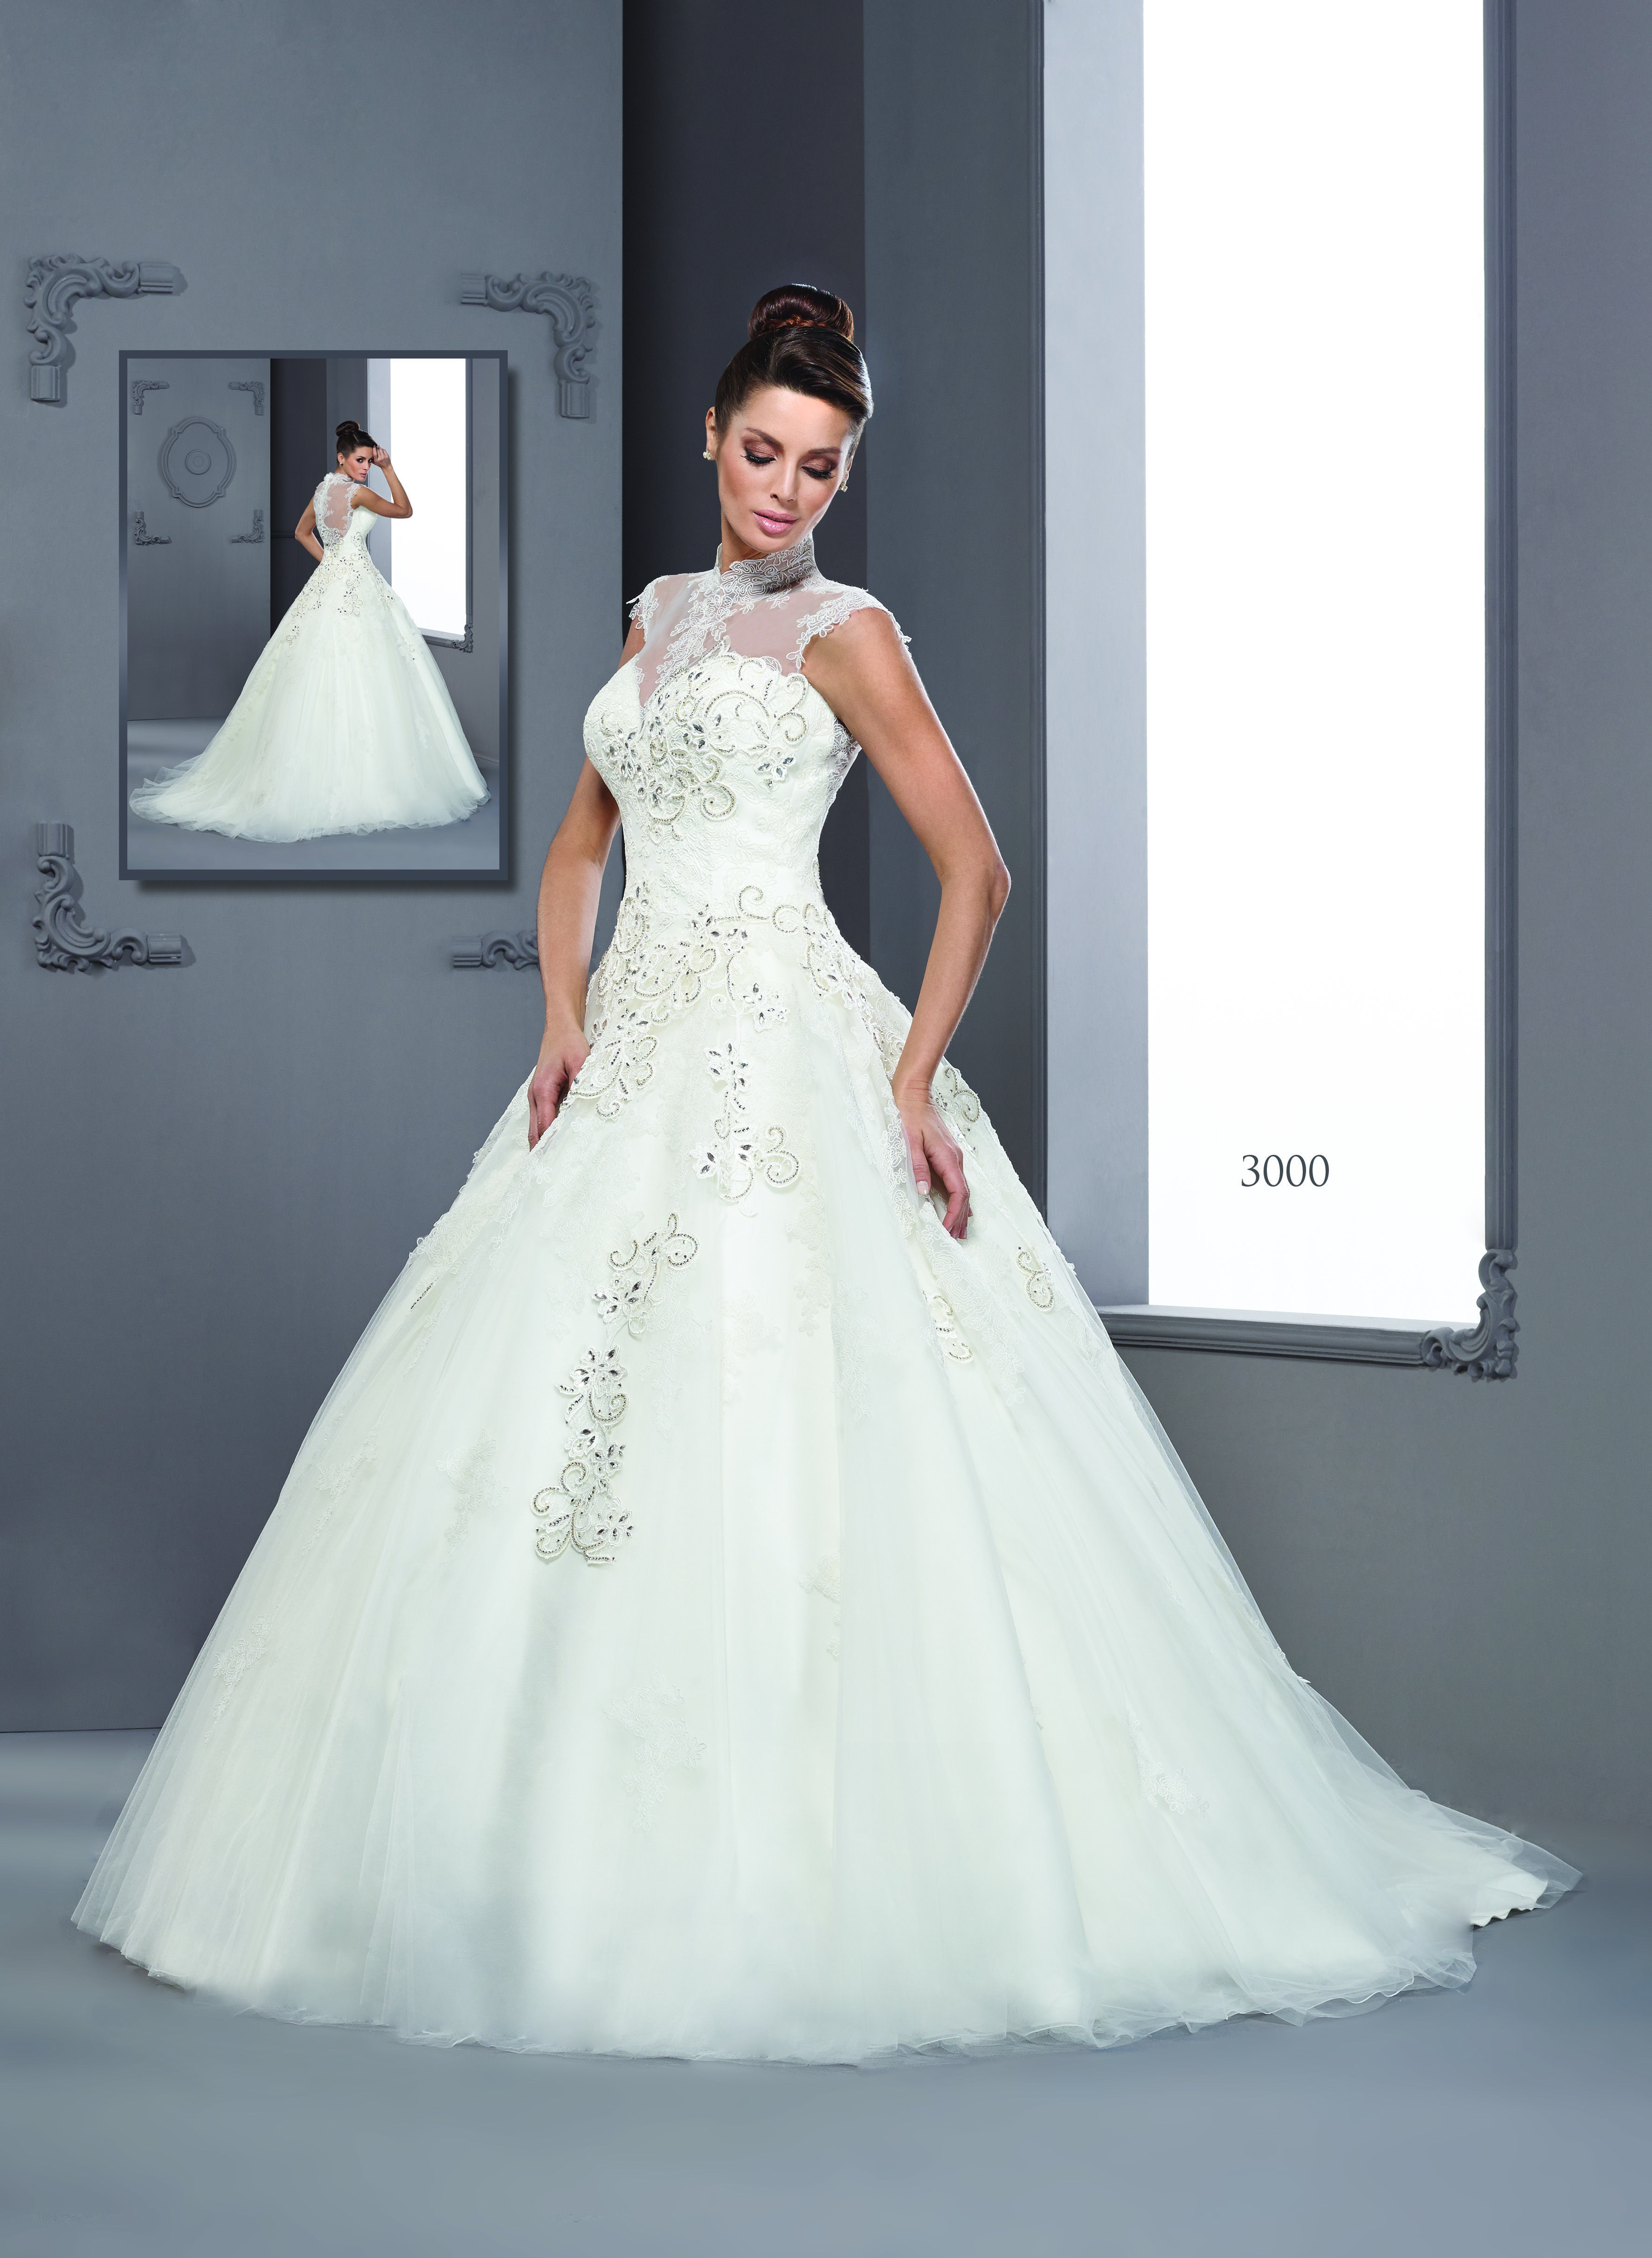 Halter style sleeveless bridal gowns by darius couture custom